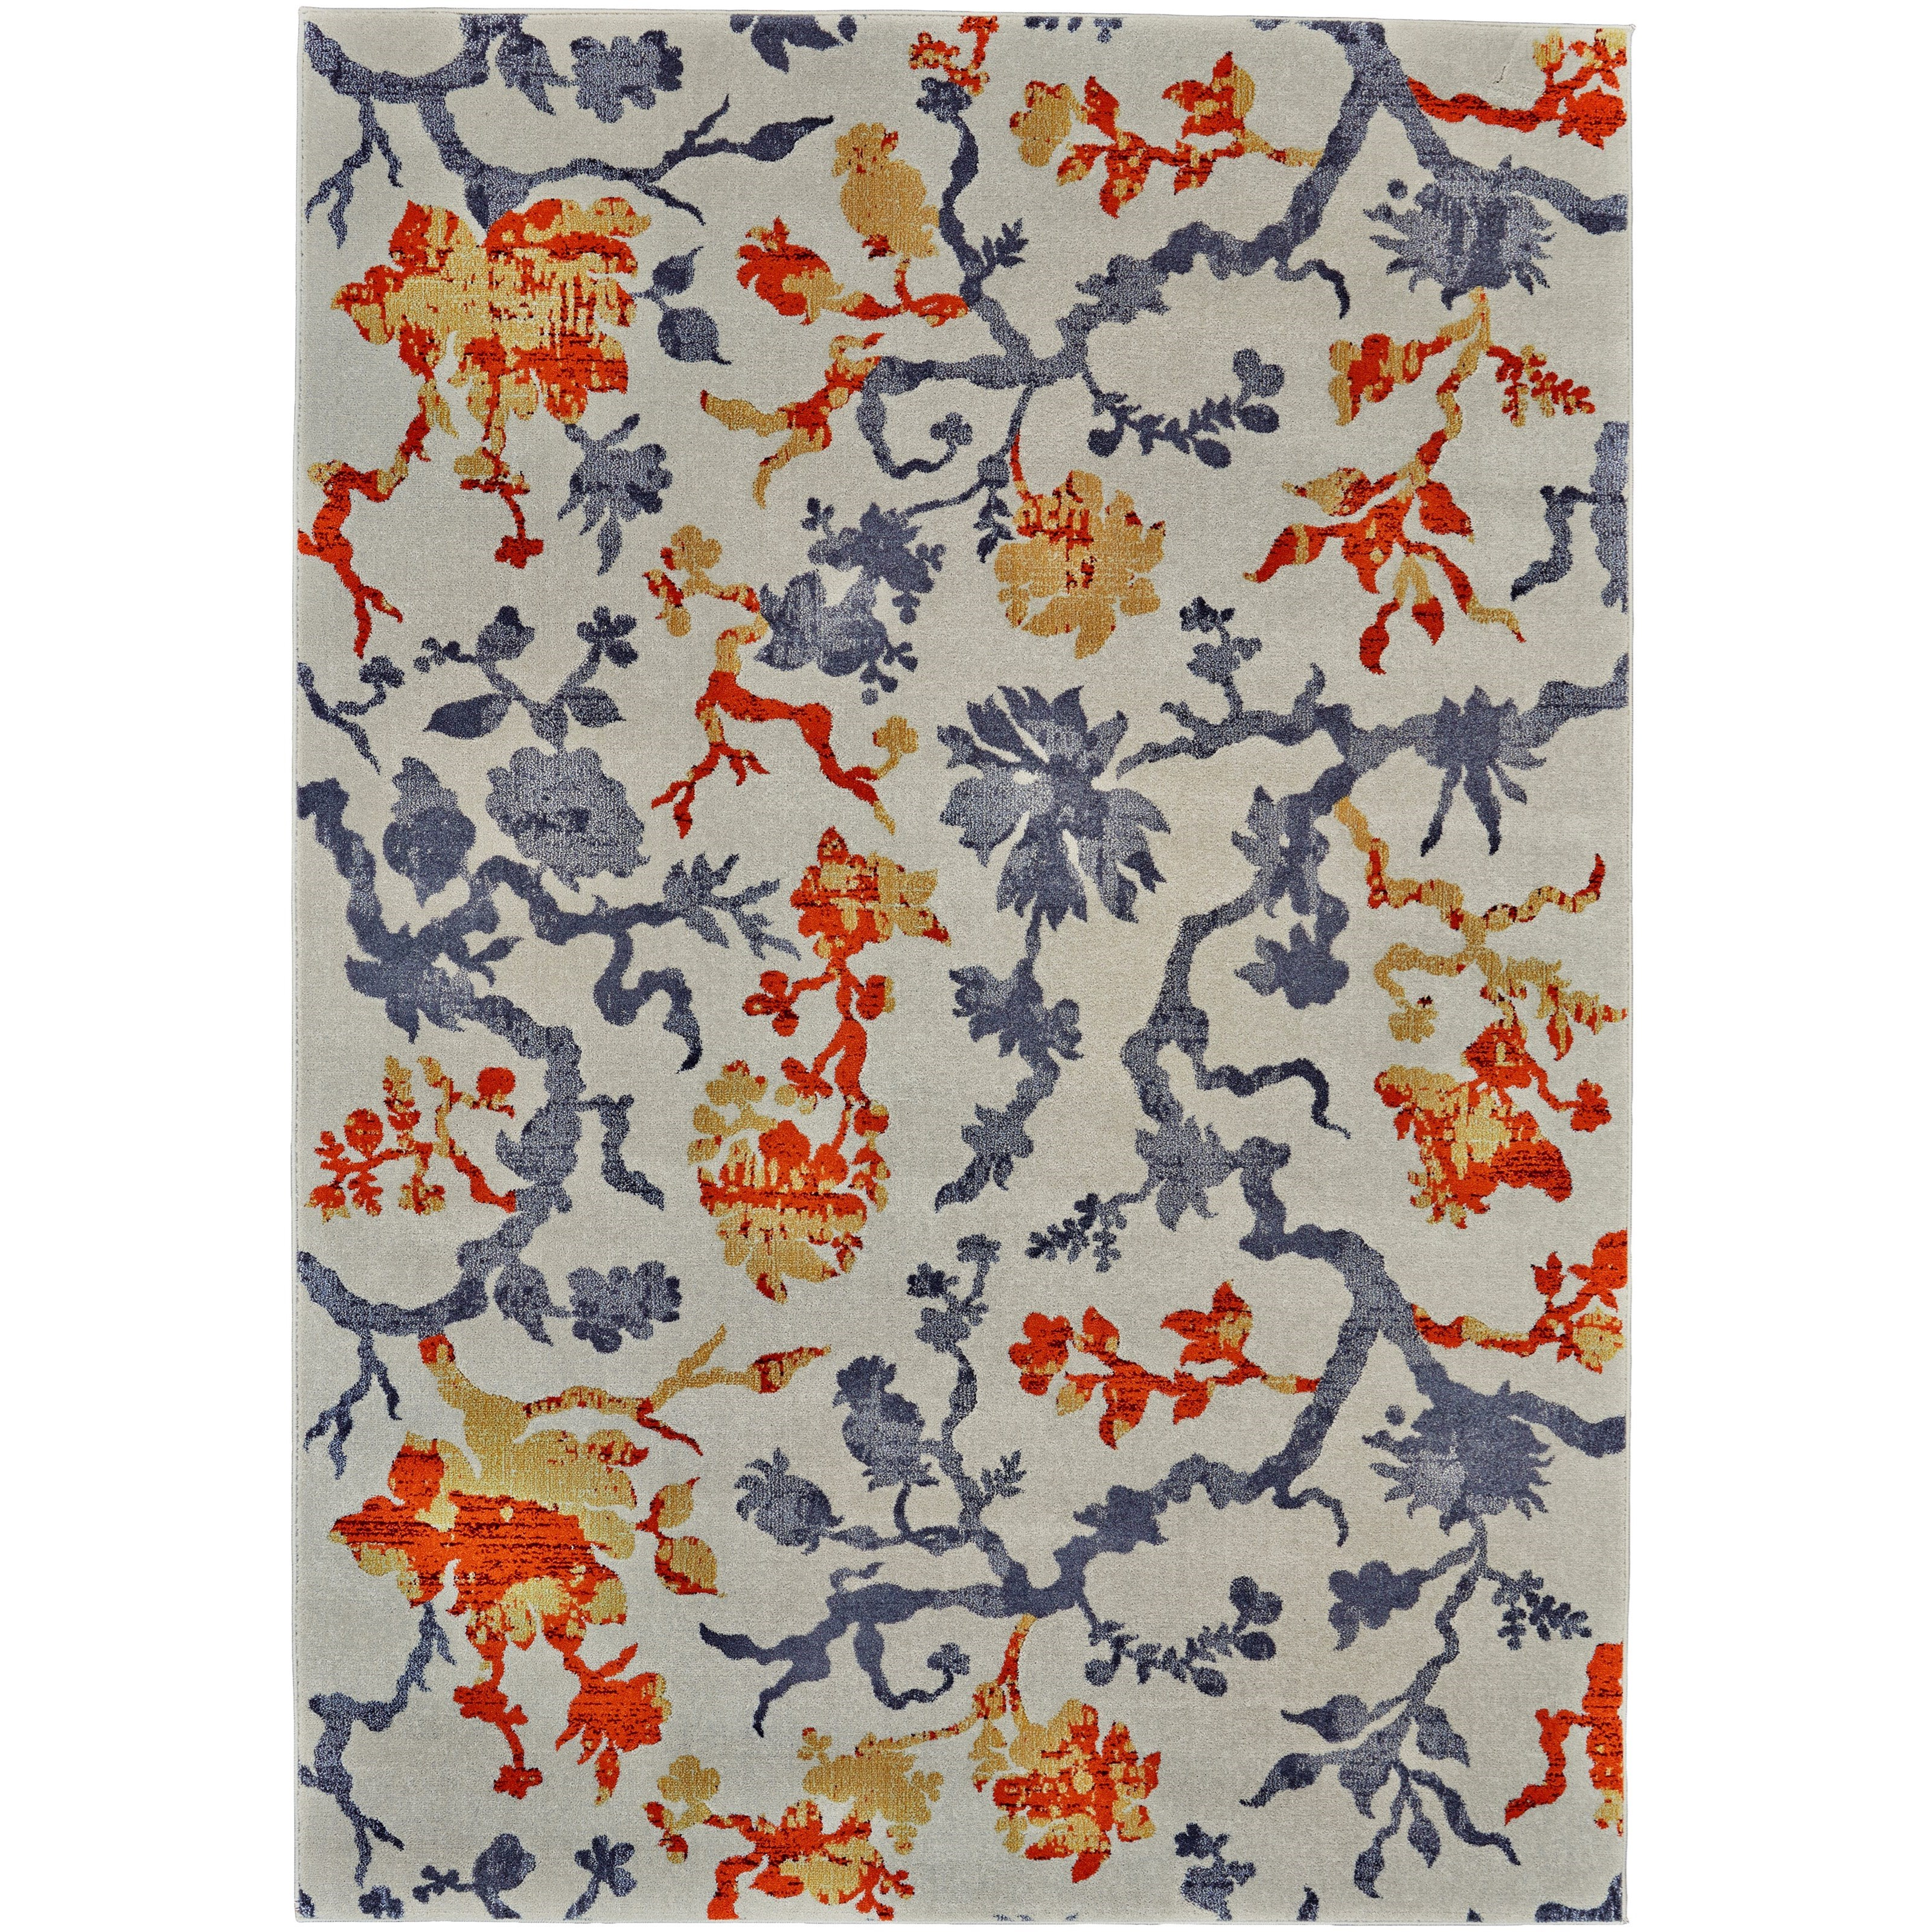 Cambrian Ambrosia 8' X 11' Area Rug by Feizy Rugs at Jacksonville Furniture Mart